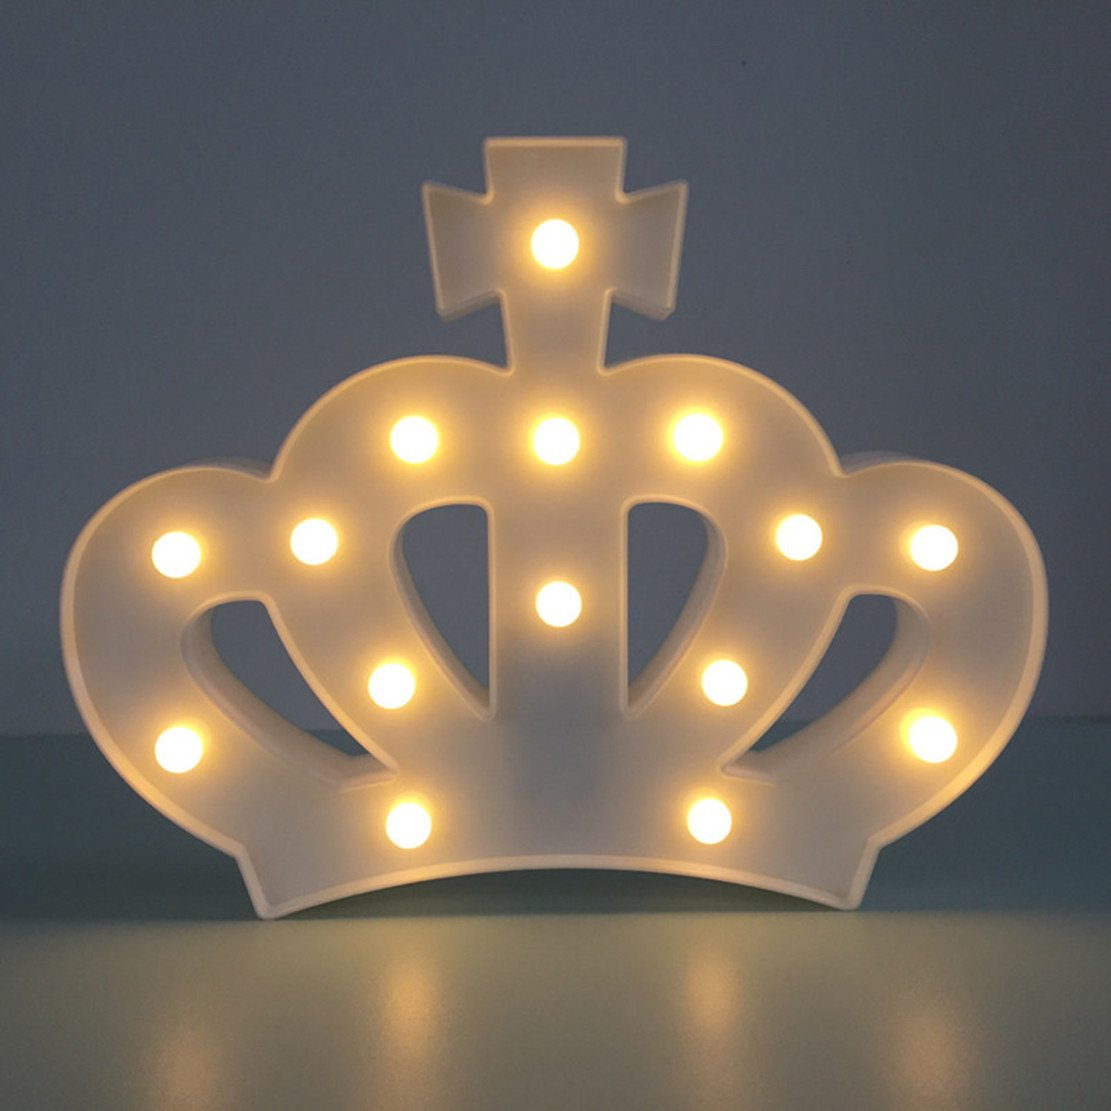 QiaoFei 3D Crown Marquee Sign Light,LED Queen Princess Kings Shaped Sign-Lighted,Wall Decor for Chistmas,Birthday party,Kids Room, Living Room, Wedding Party Decor(White) by QiaoFei (Image #4)